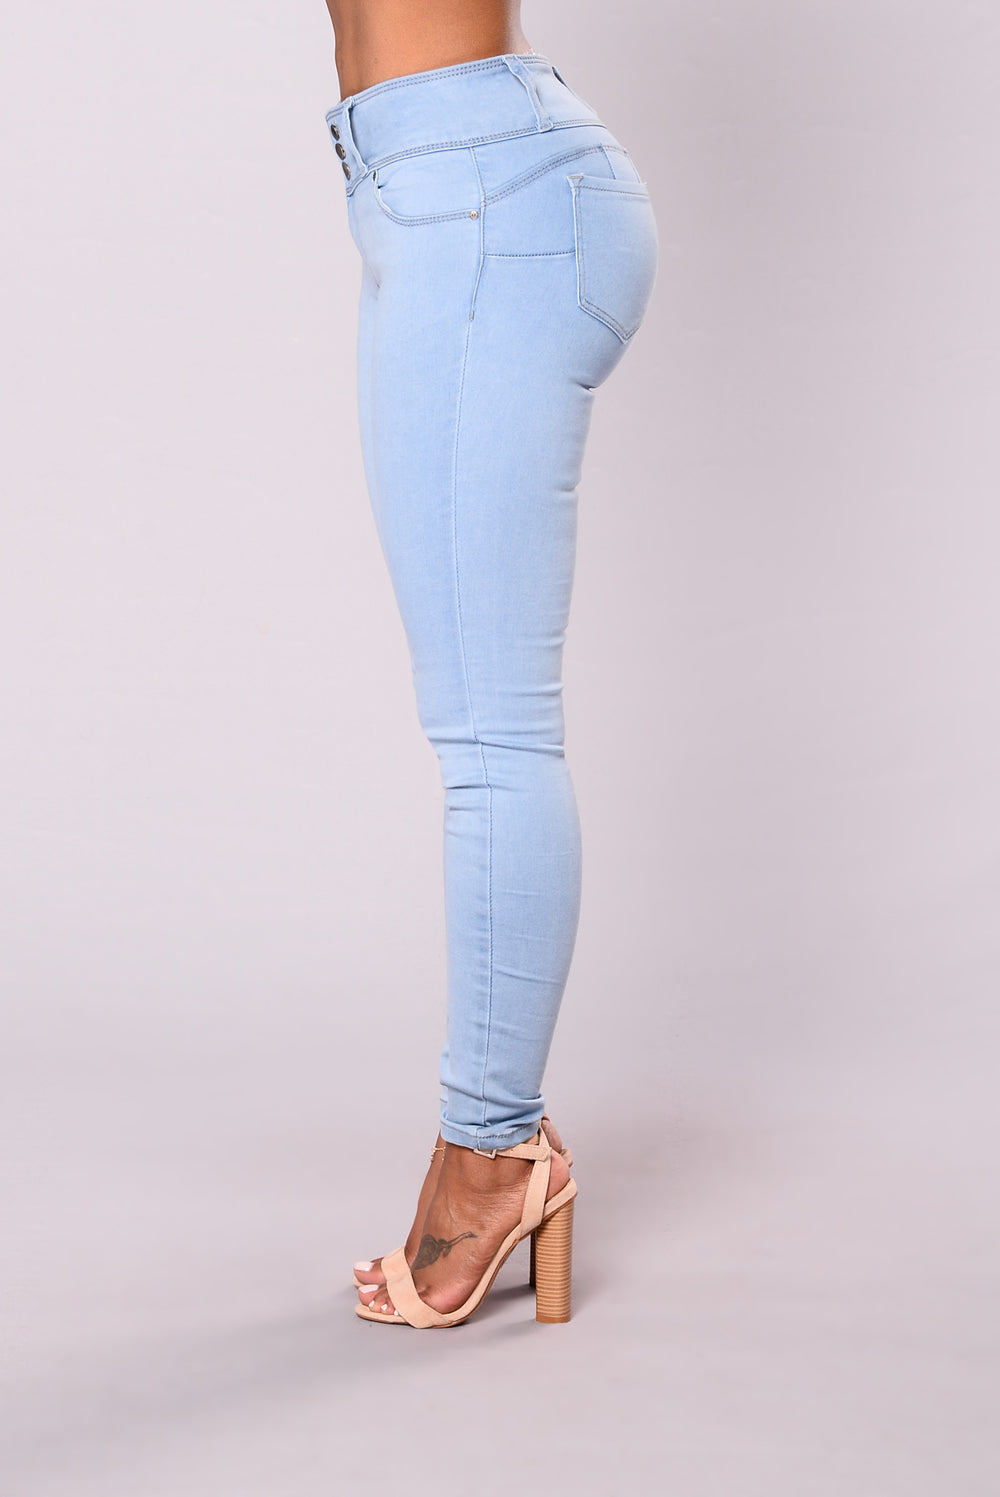 Round Of Applause Booty Shaped Jeans Light Blue